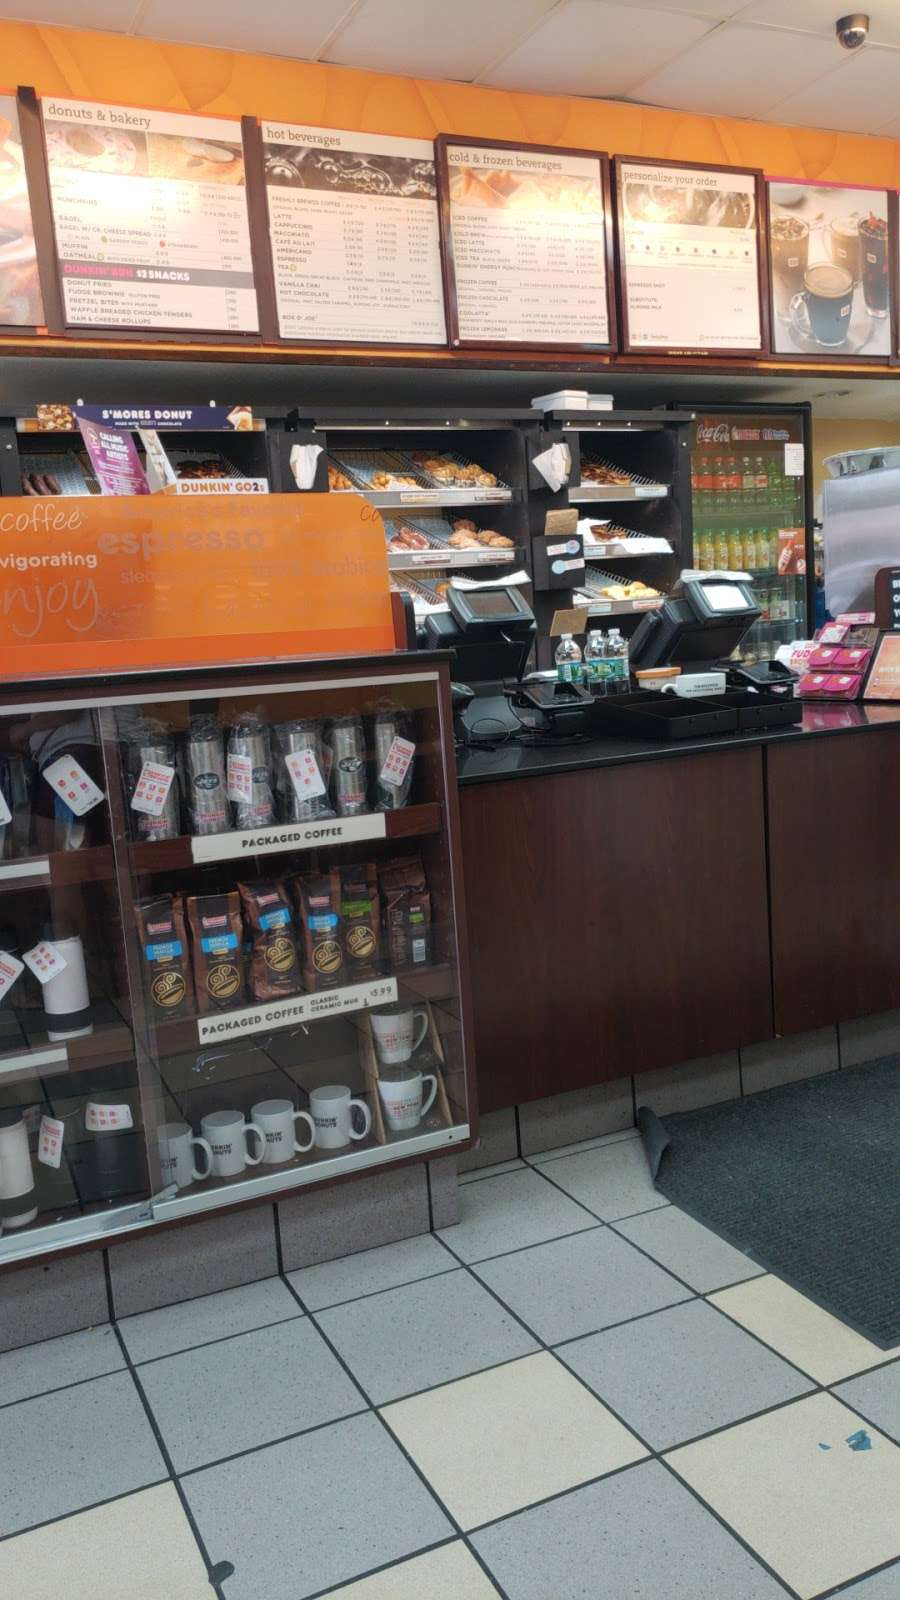 Dunkin Donuts - cafe  | Photo 8 of 10 | Address: 2241 Southern Blvd, Bronx, NY 10458, USA | Phone: (718) 220-4946